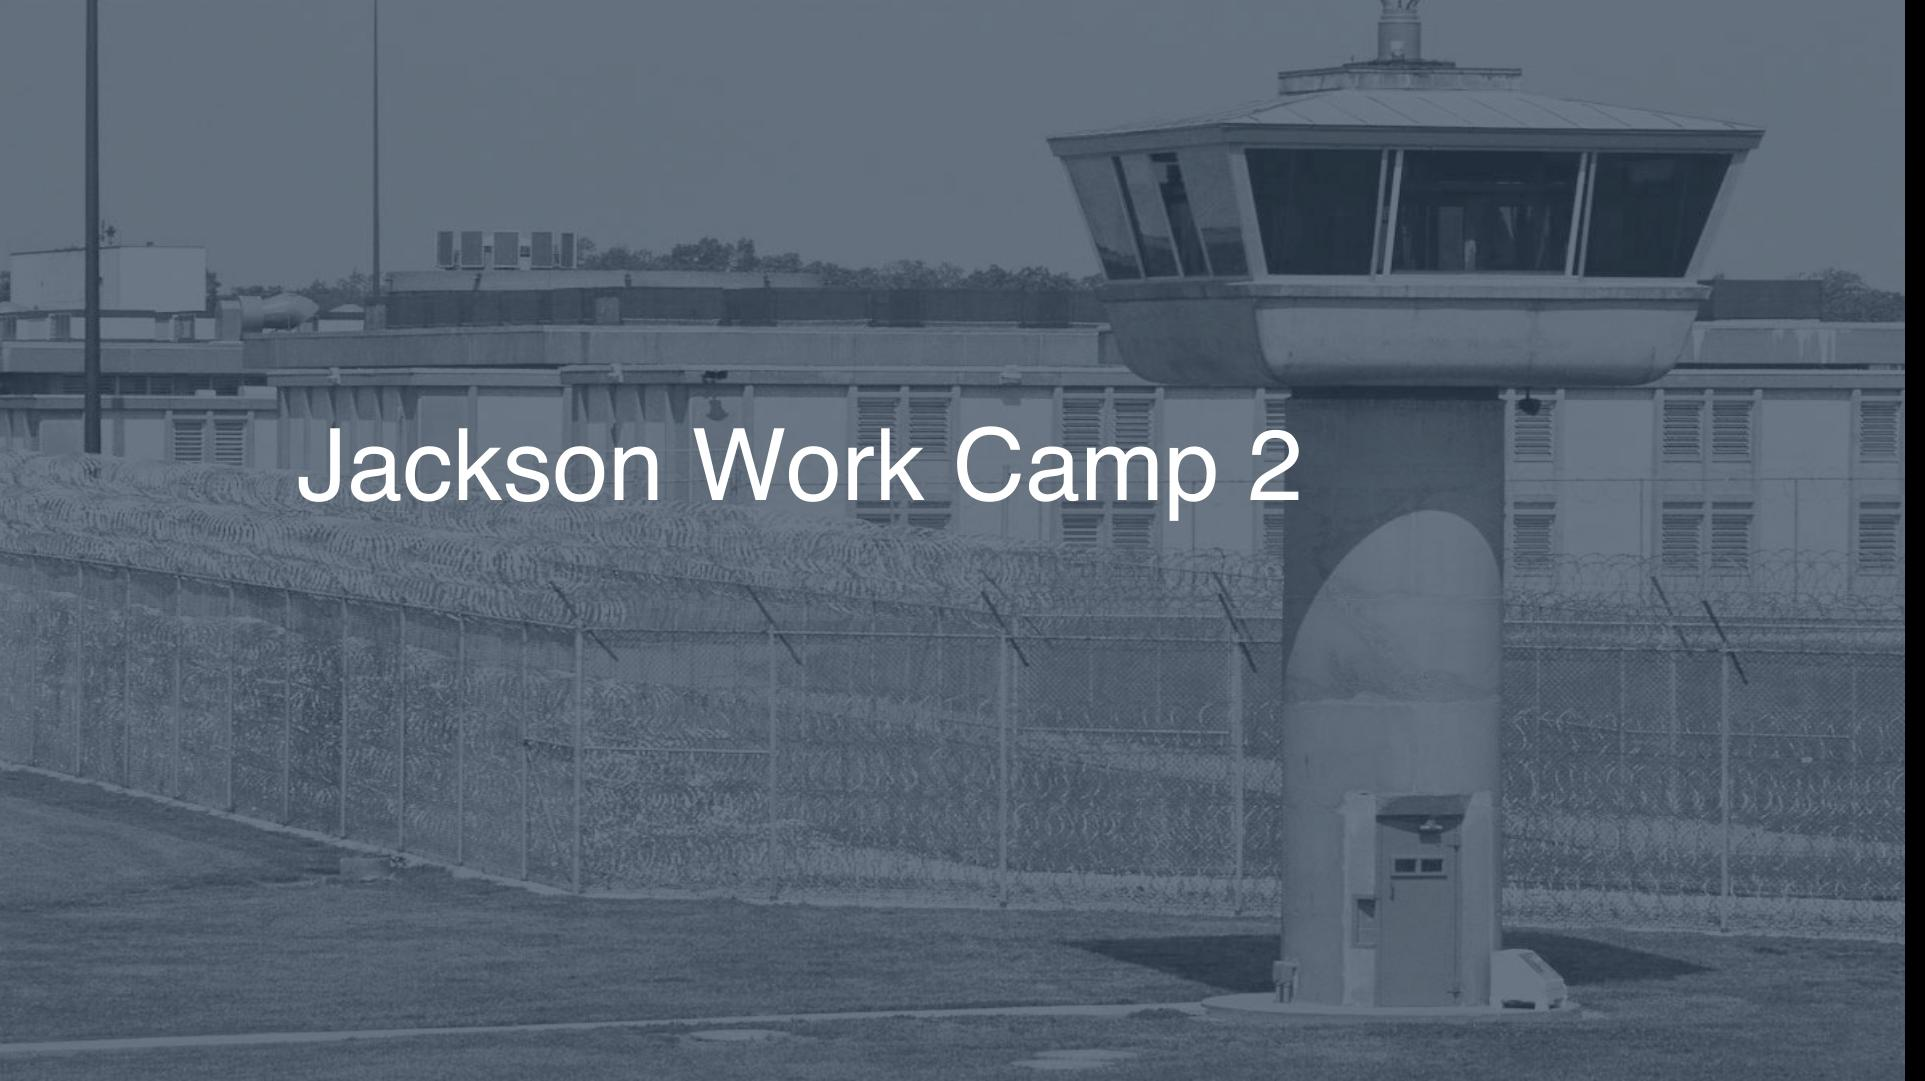 Jackson Work Camp correctional facility picture